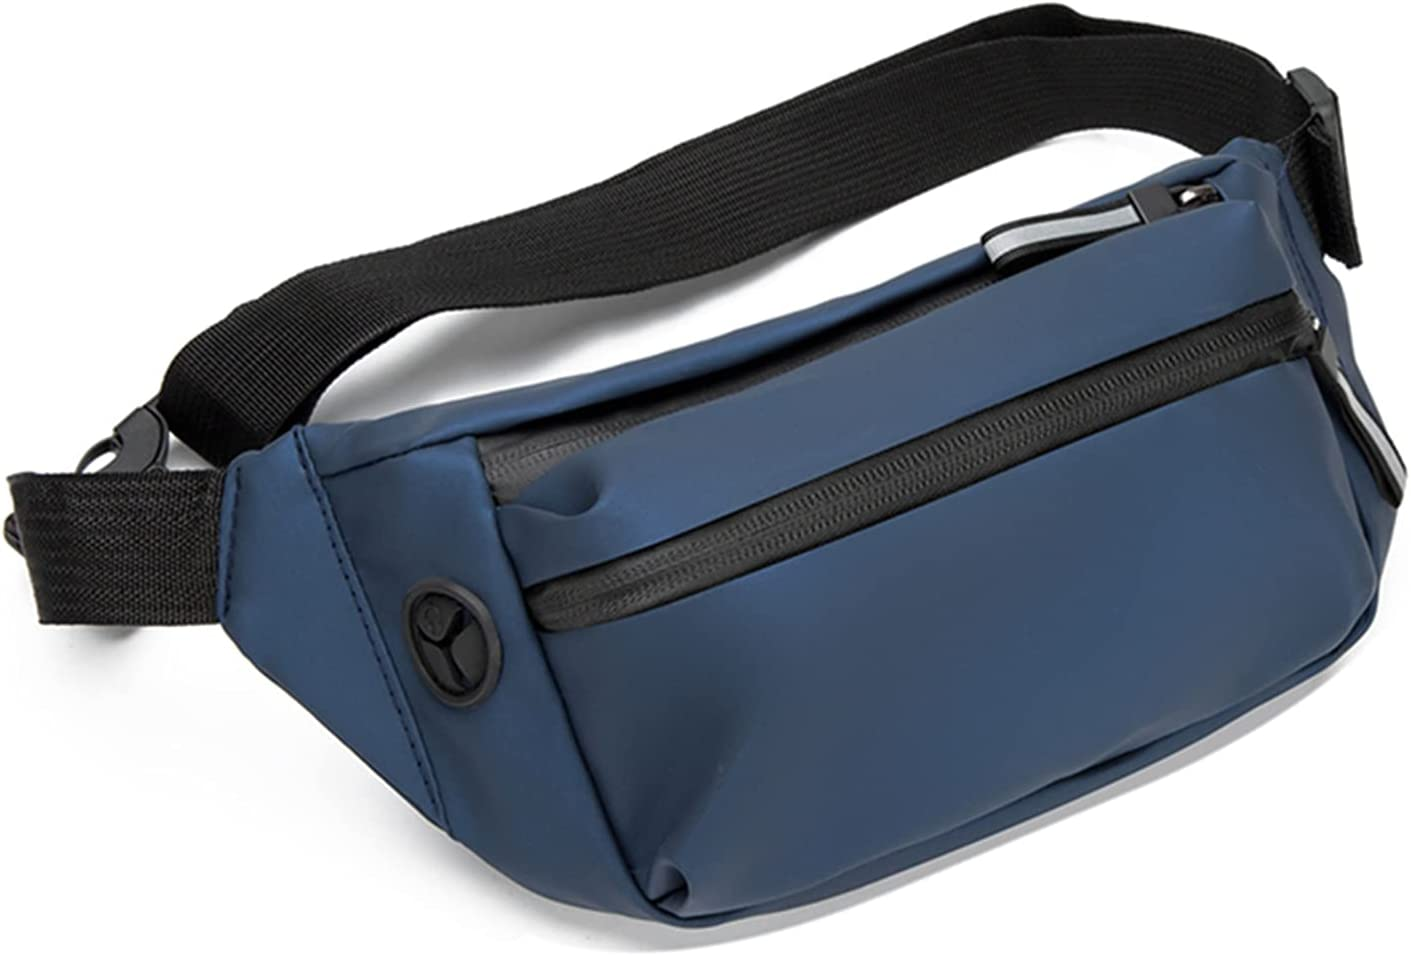 Sanpeng Fanny Pack for Men Women Fashion Fresno Mall Surprise price Ad With Bag Waist -